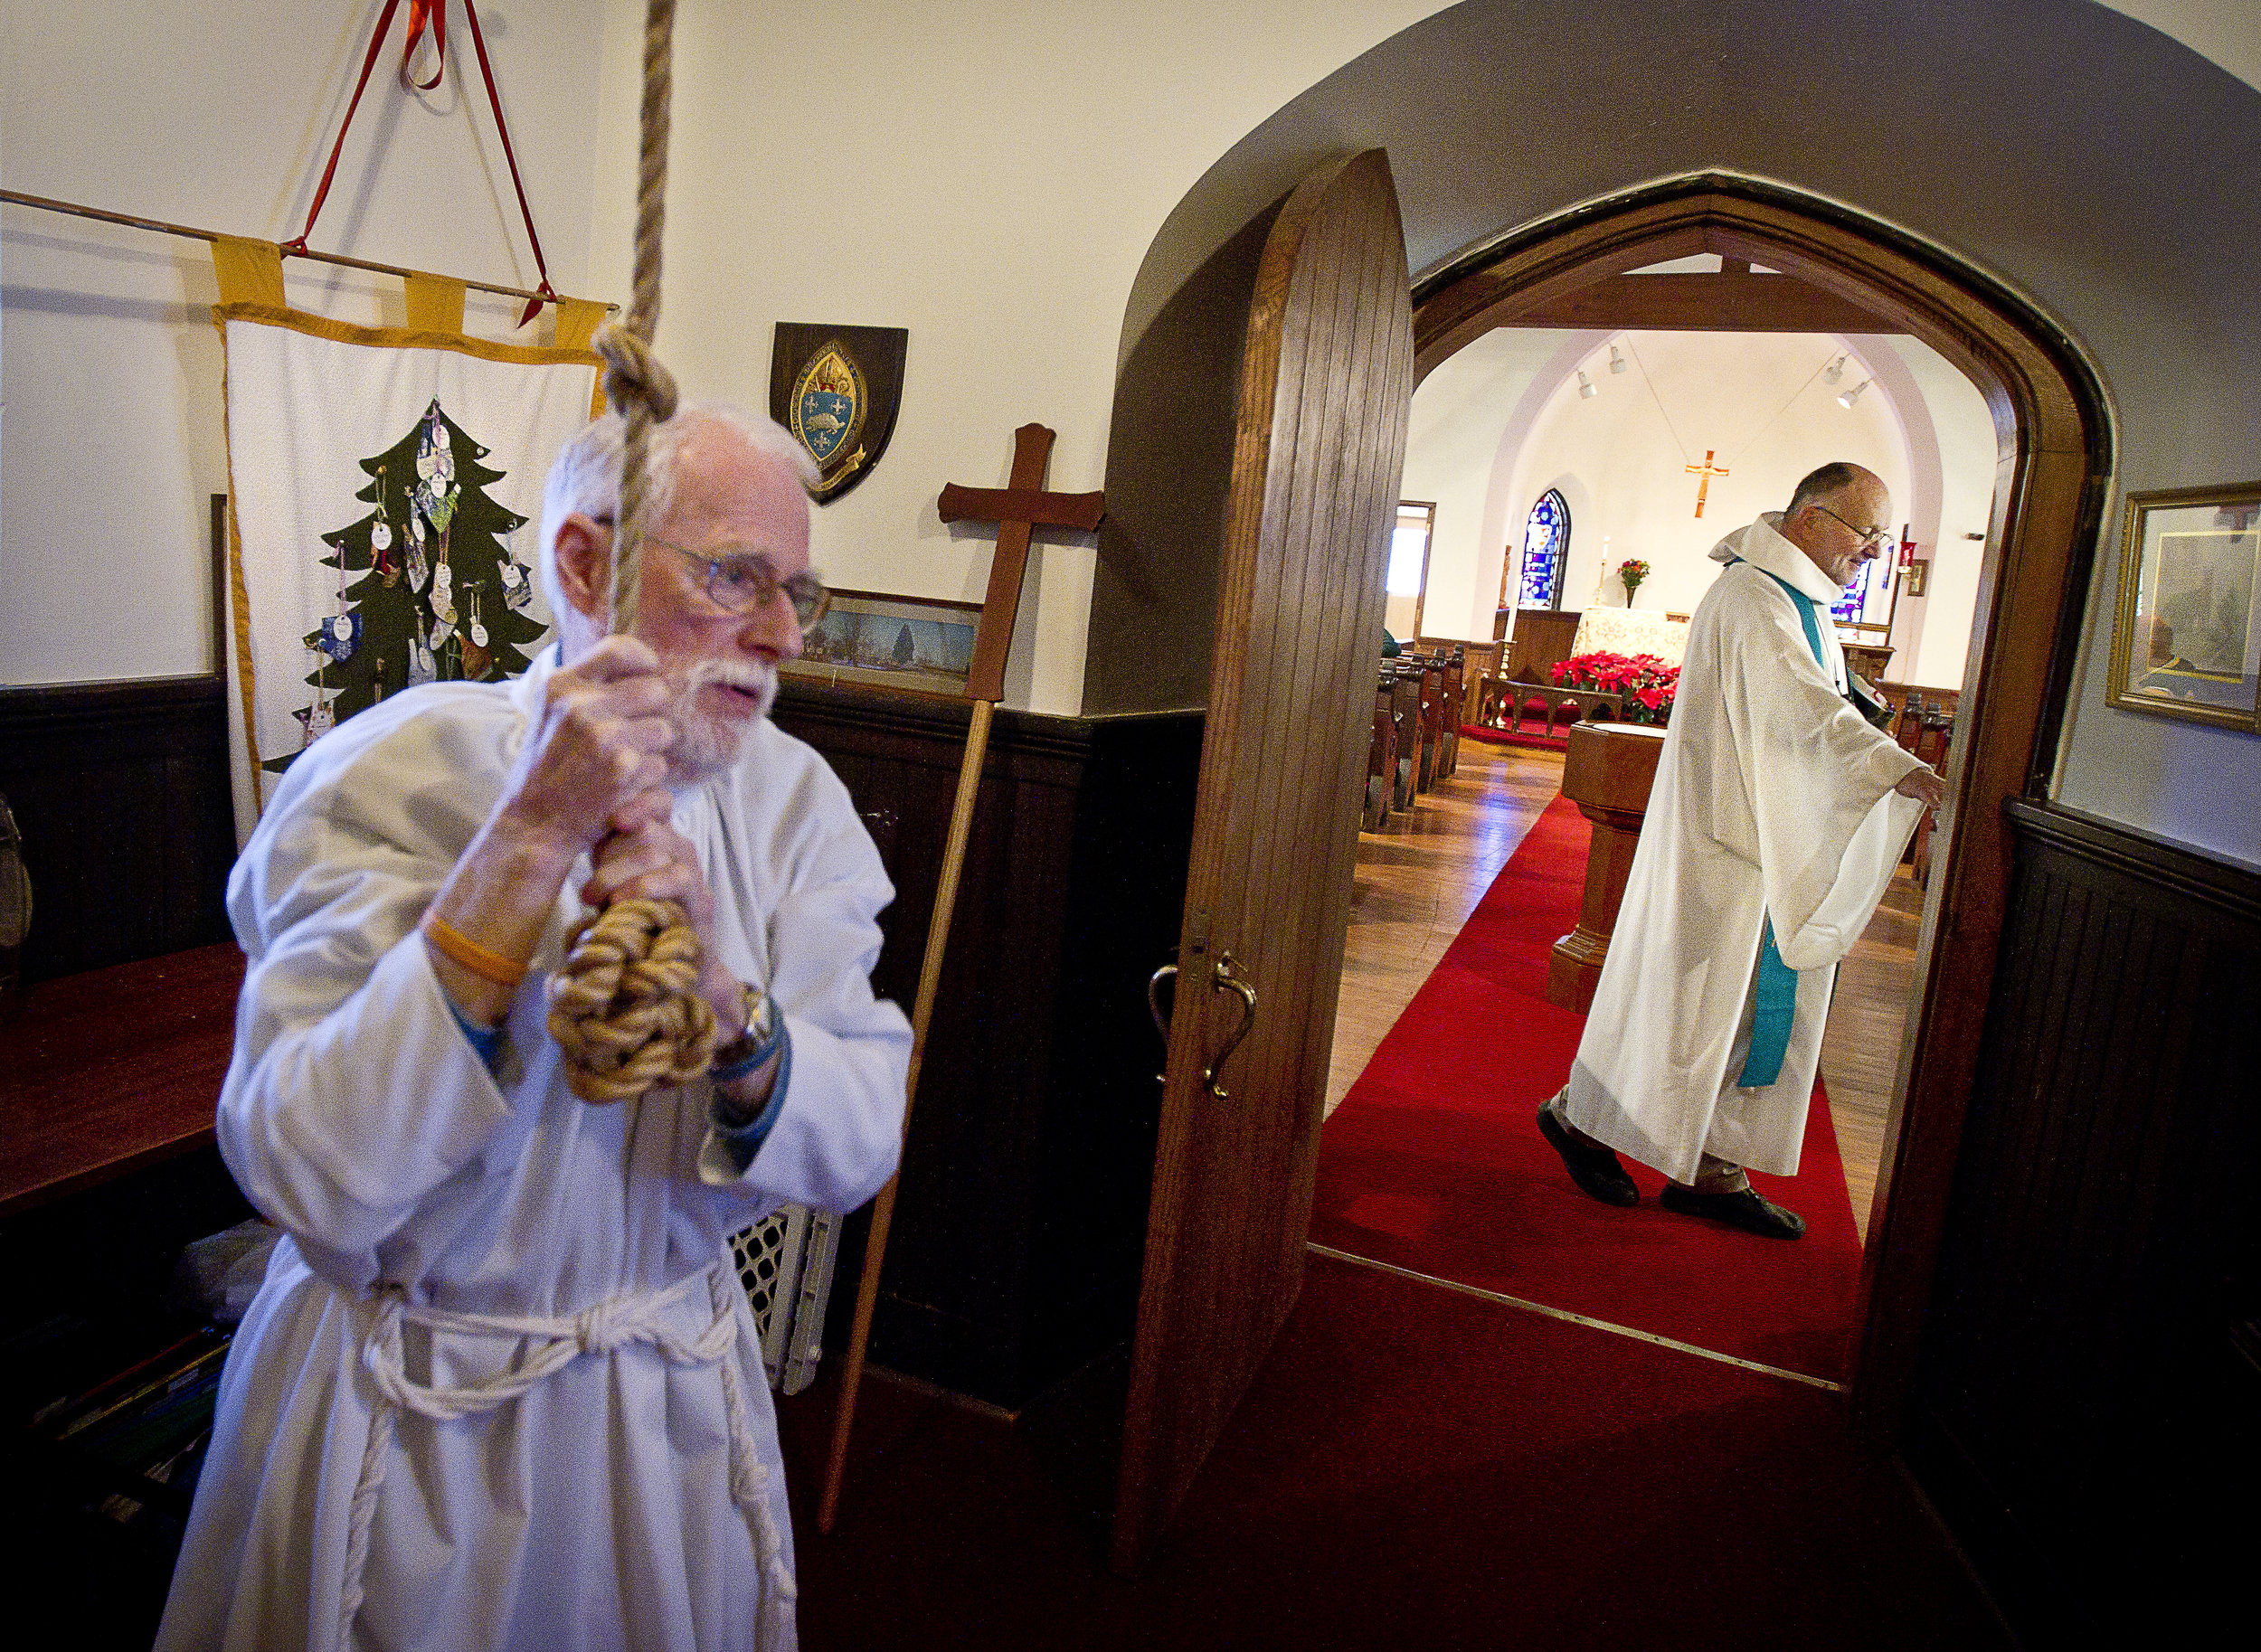 NORTH LAKE, WI — JANUARY 18, 2015: Reverend David Couper prepares for mass as junior warden Peter Buerosse rings the bells at the St. Peter's Episcopal Church, Sunday, January 18, 2015.